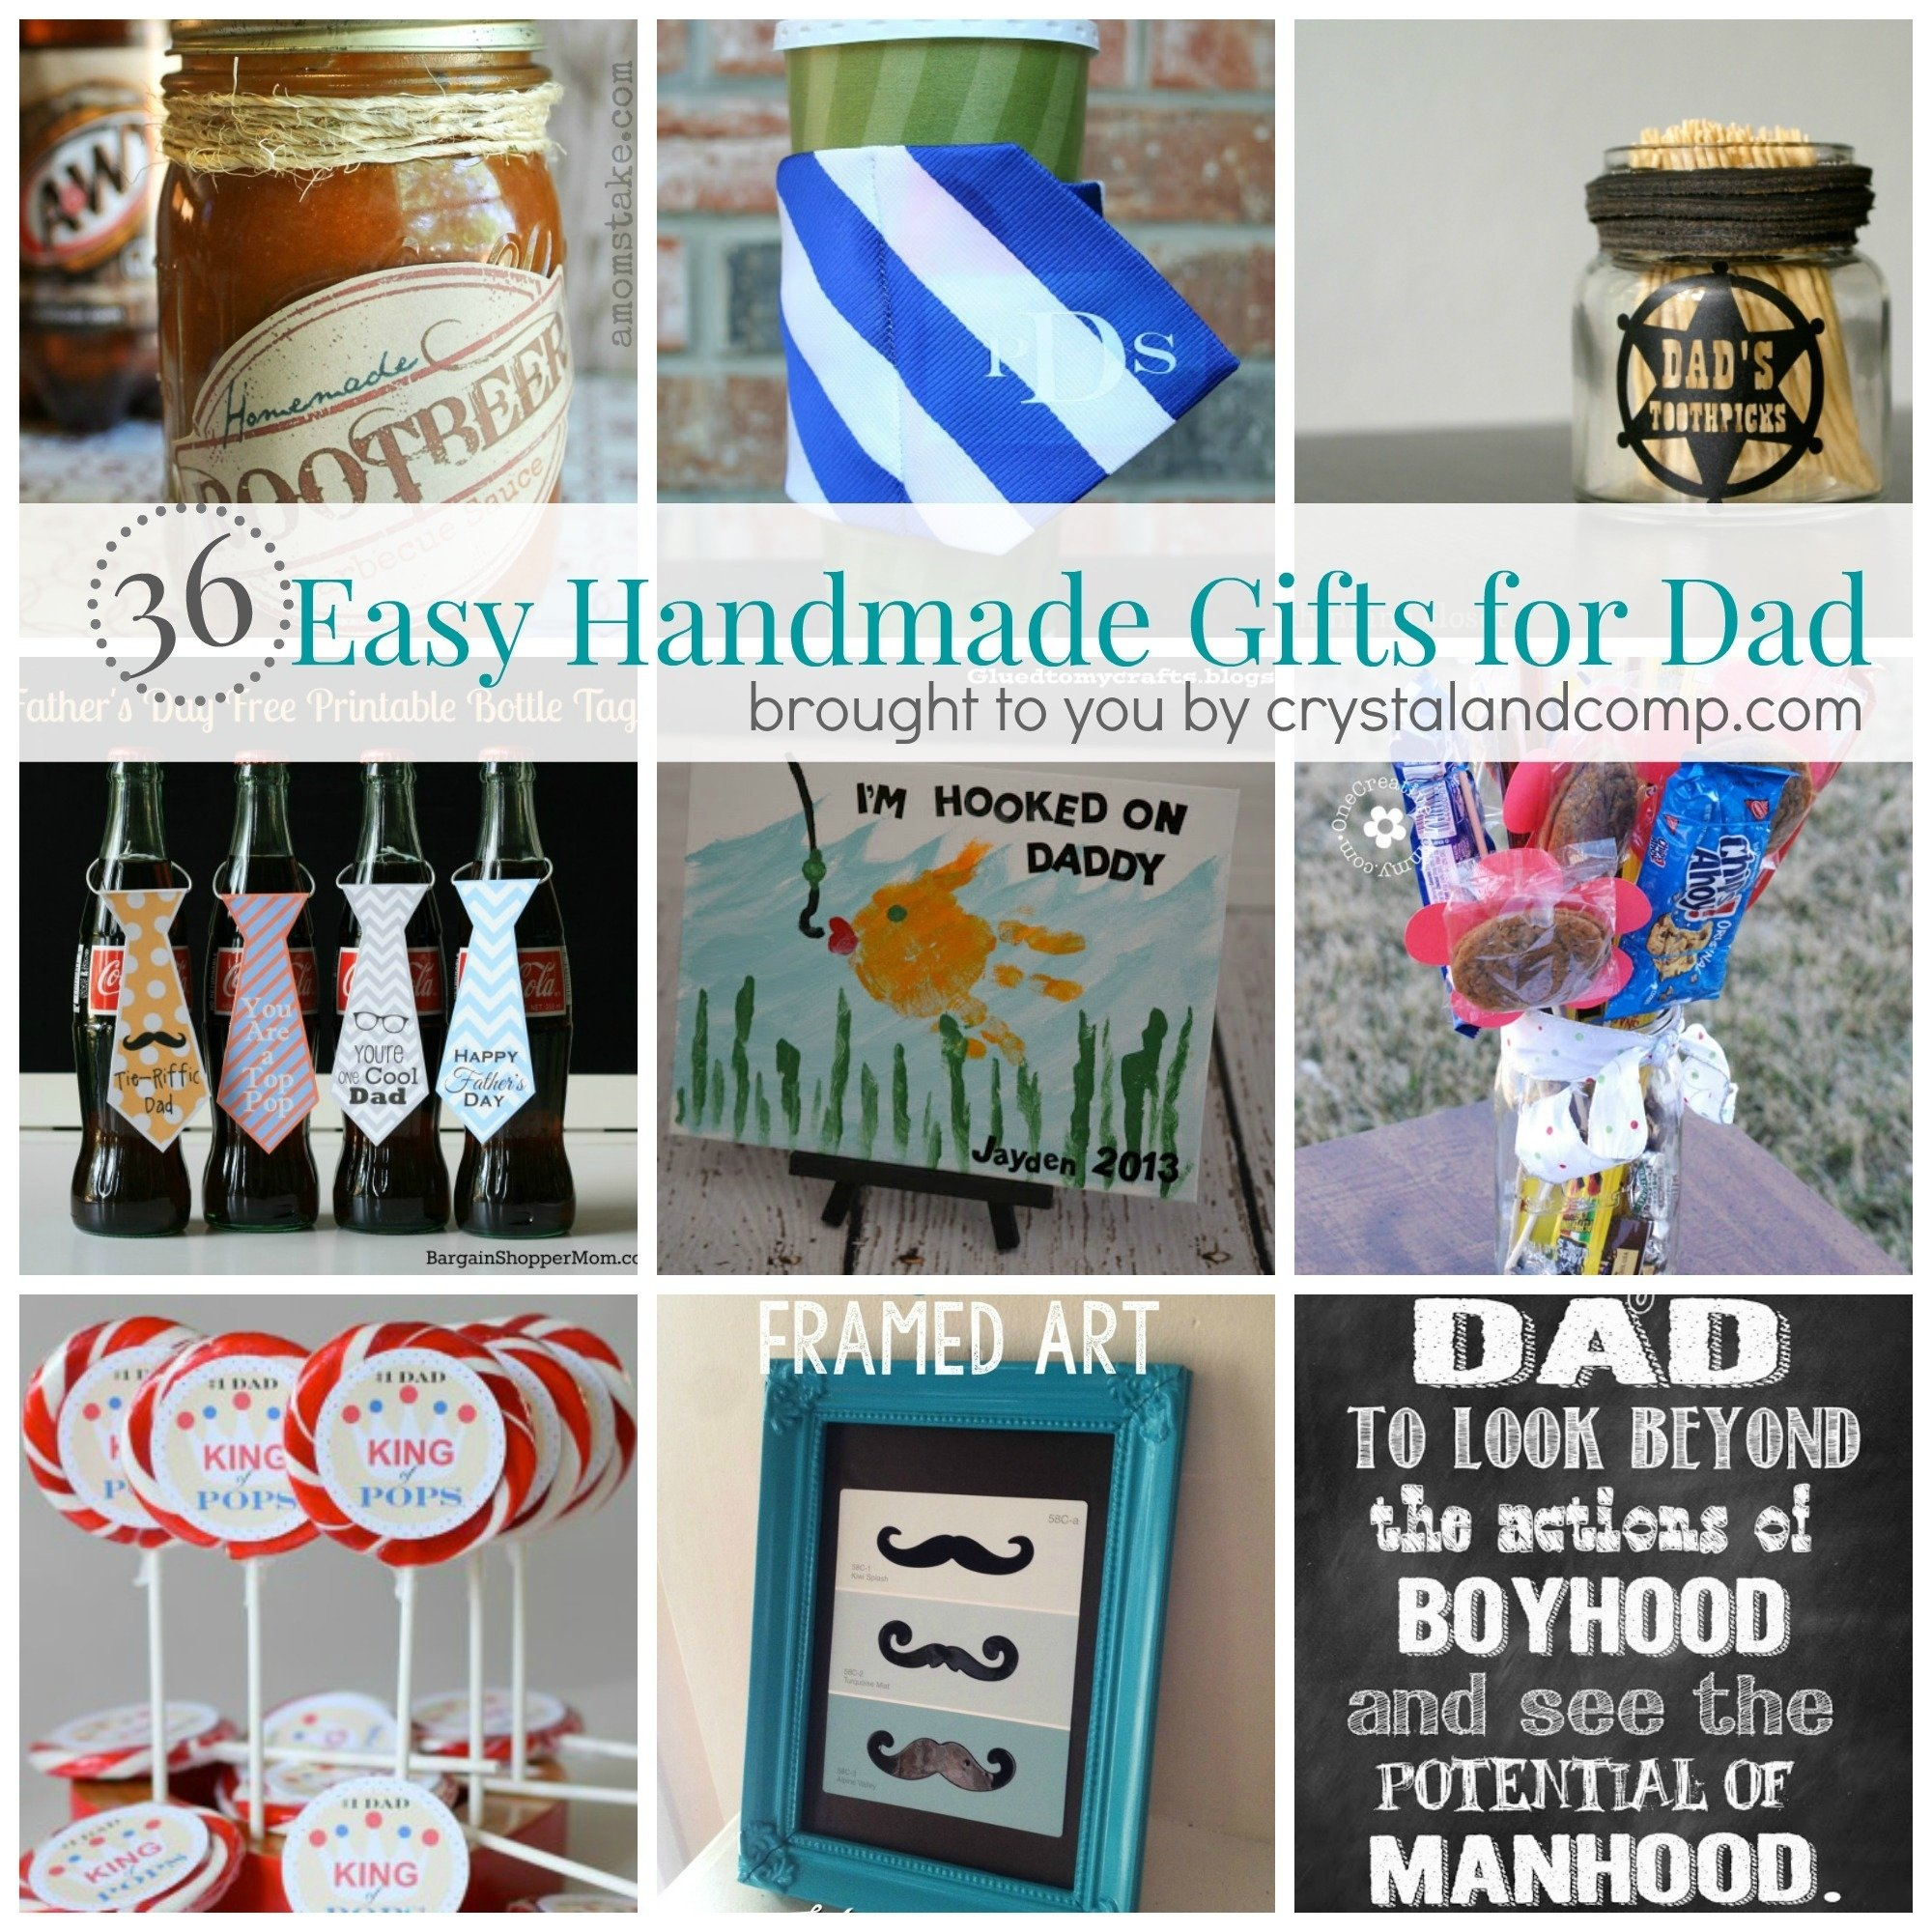 10 stunning homemade christmas gift ideas for dad 10 stunning homemade christmas gift ideas for dad 36 easy handmade gift ideas for dad easy solutioingenieria Images